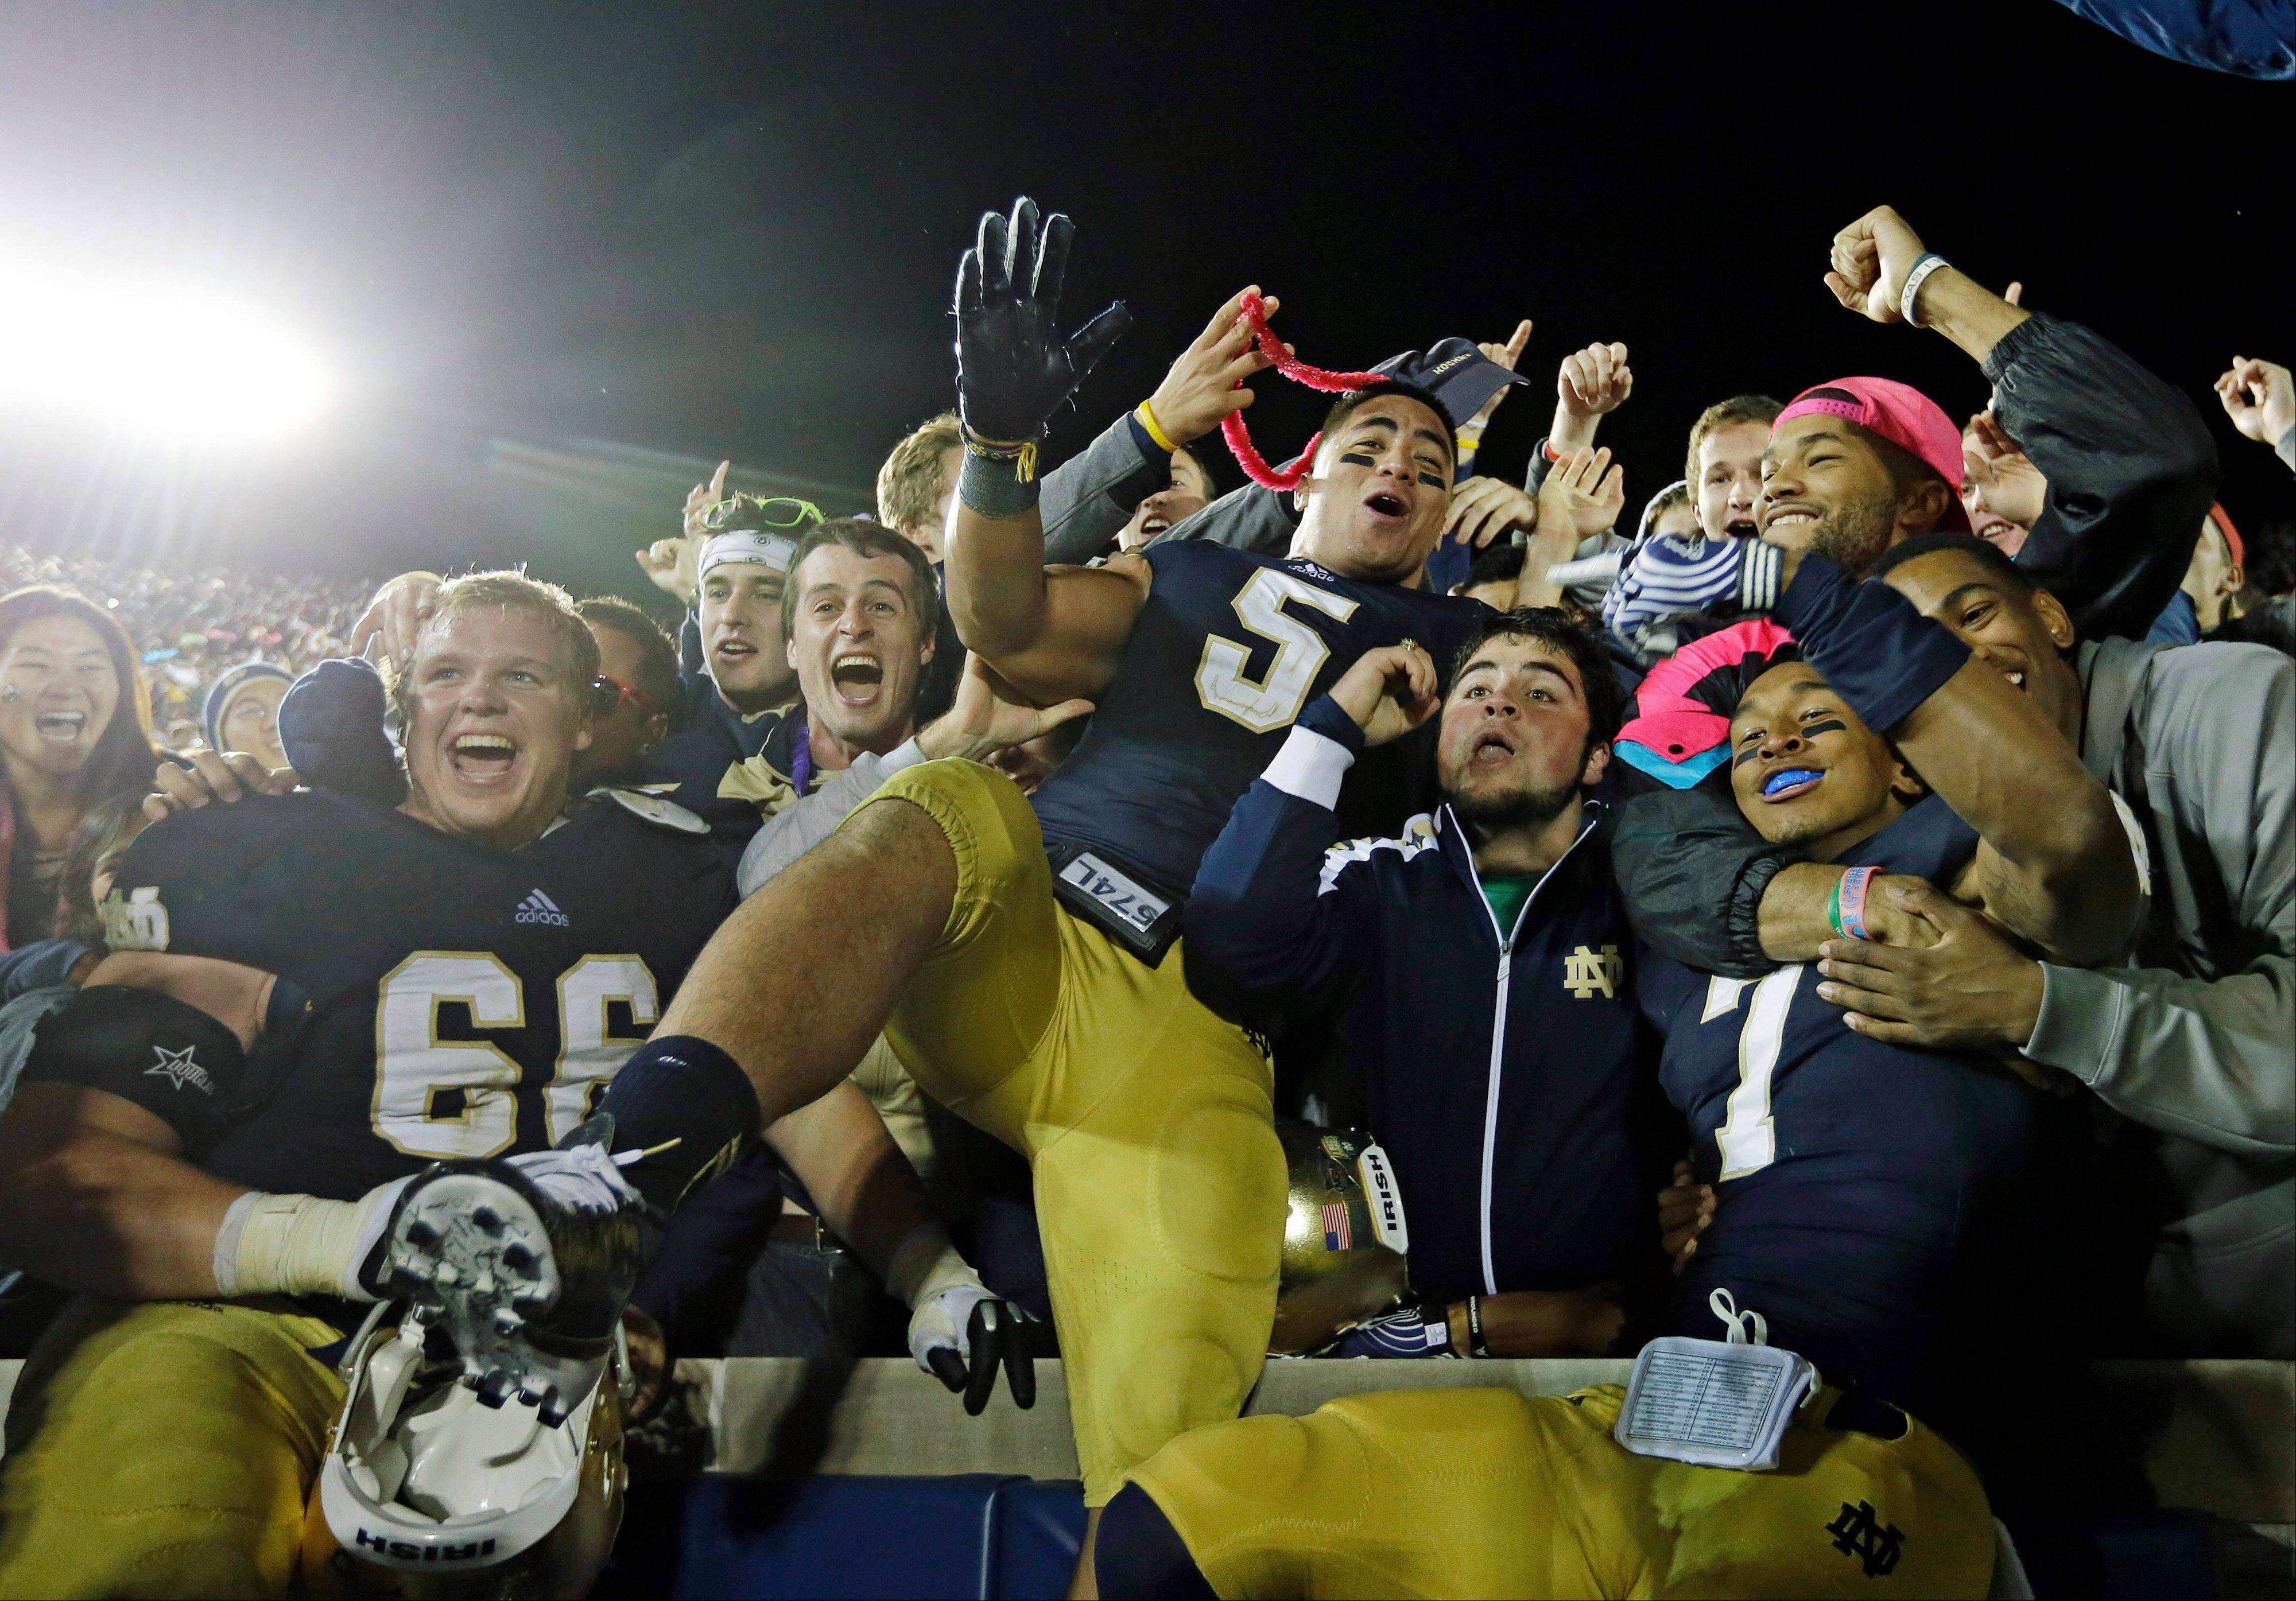 Notre Dame's Chris Watt (66), Manti Te'o (5) and TJ Jones (7) celebrate with fans after Notre Dame defeated Michigan, 13-6 in South Bend, Ind. Notre Dame defensive coordinator Bob Diaco believes Manti Te�o is the finest football player in college.